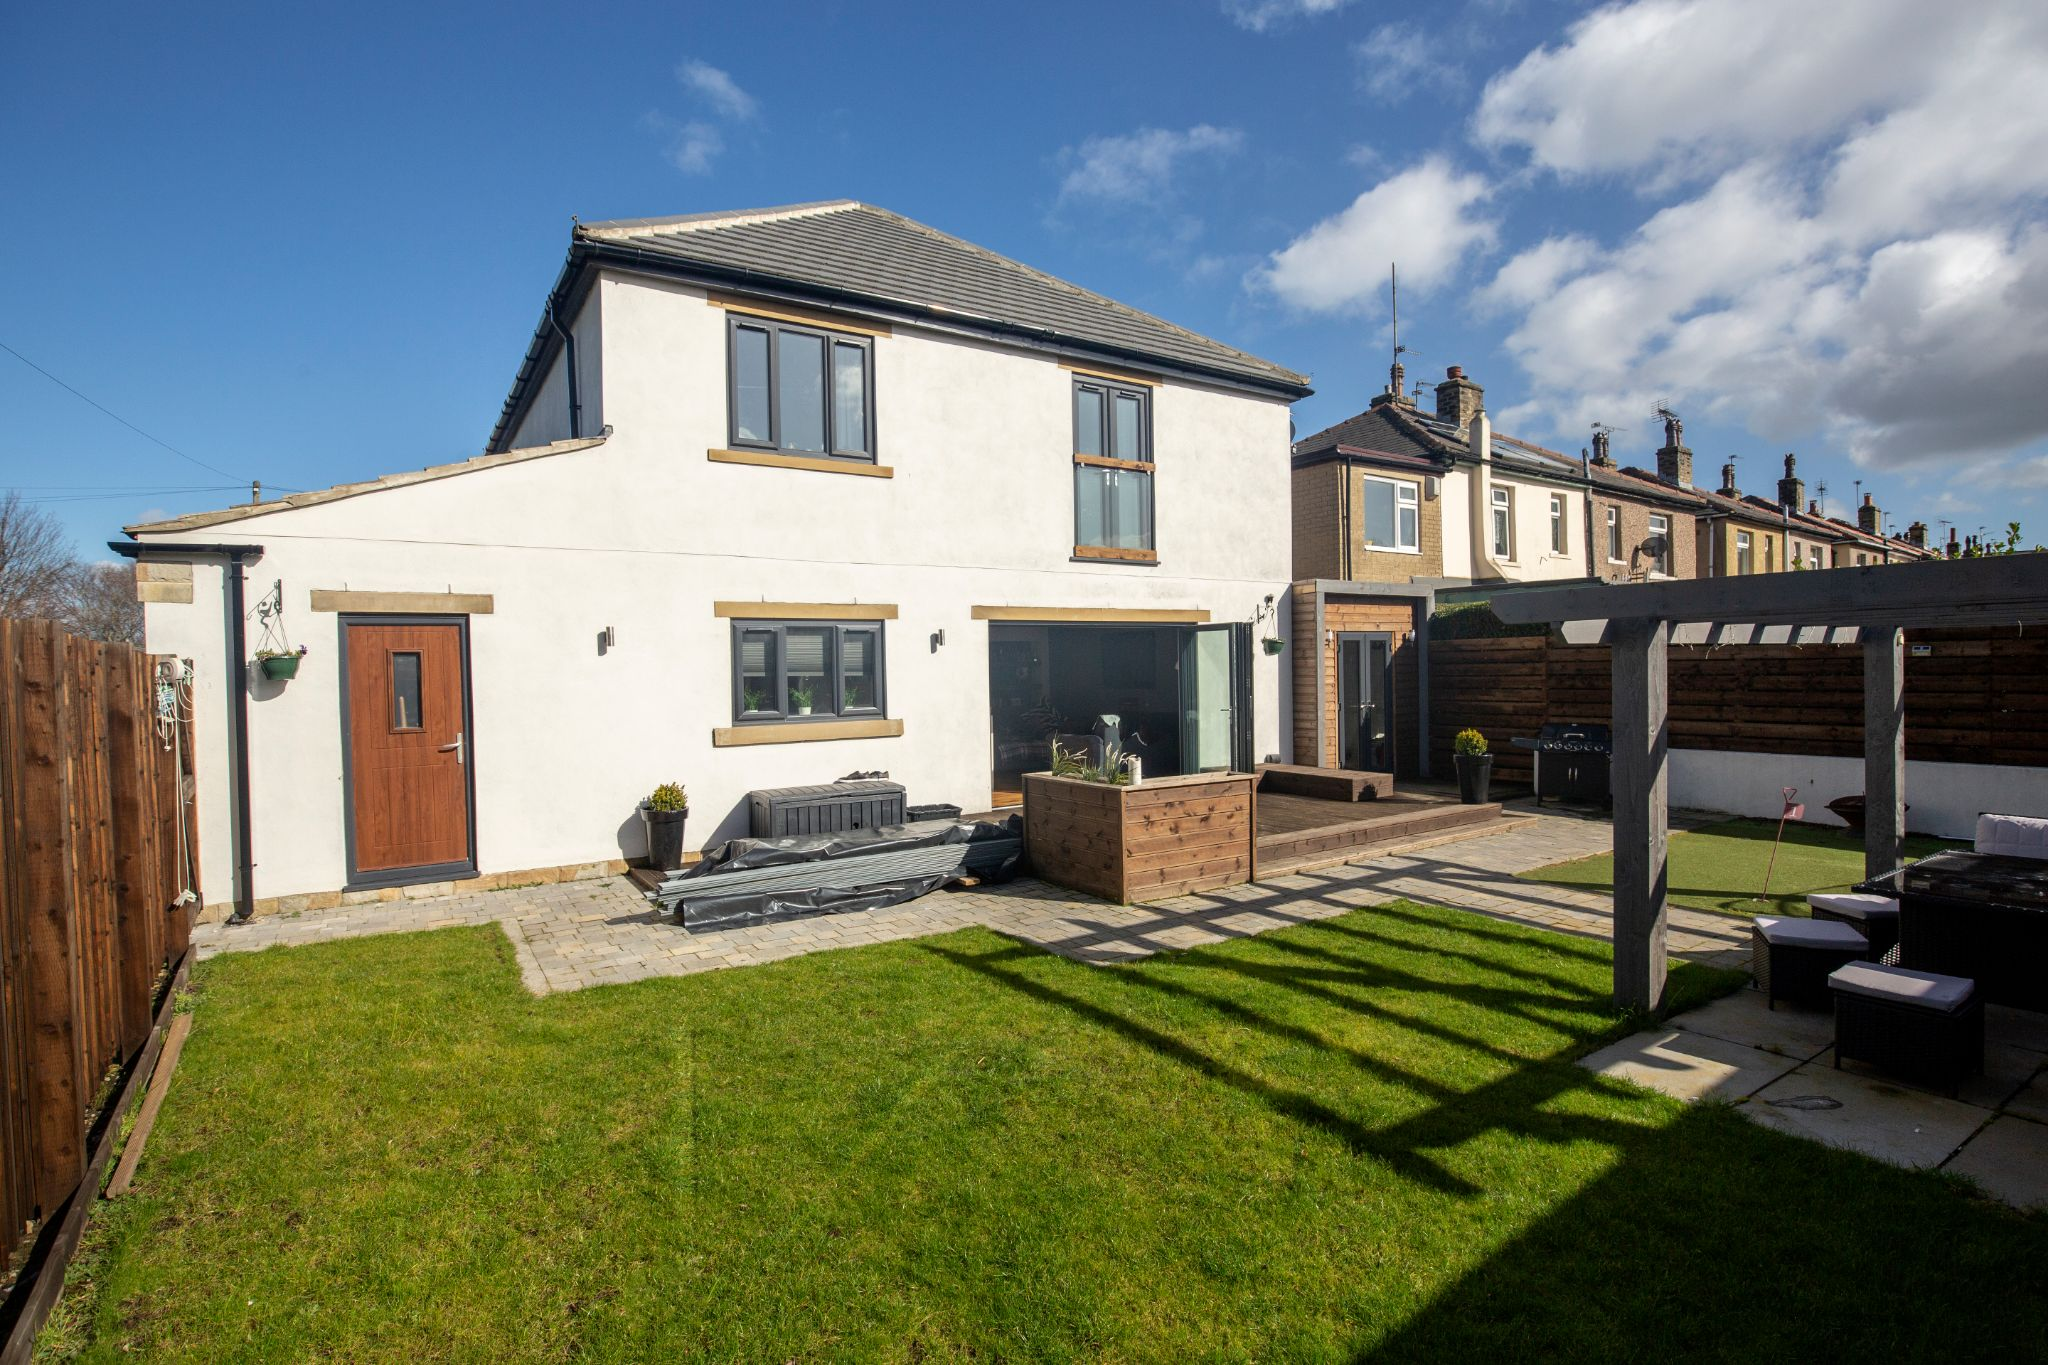 4 bedroom detached house Sold in Brighouse - Rear elevation